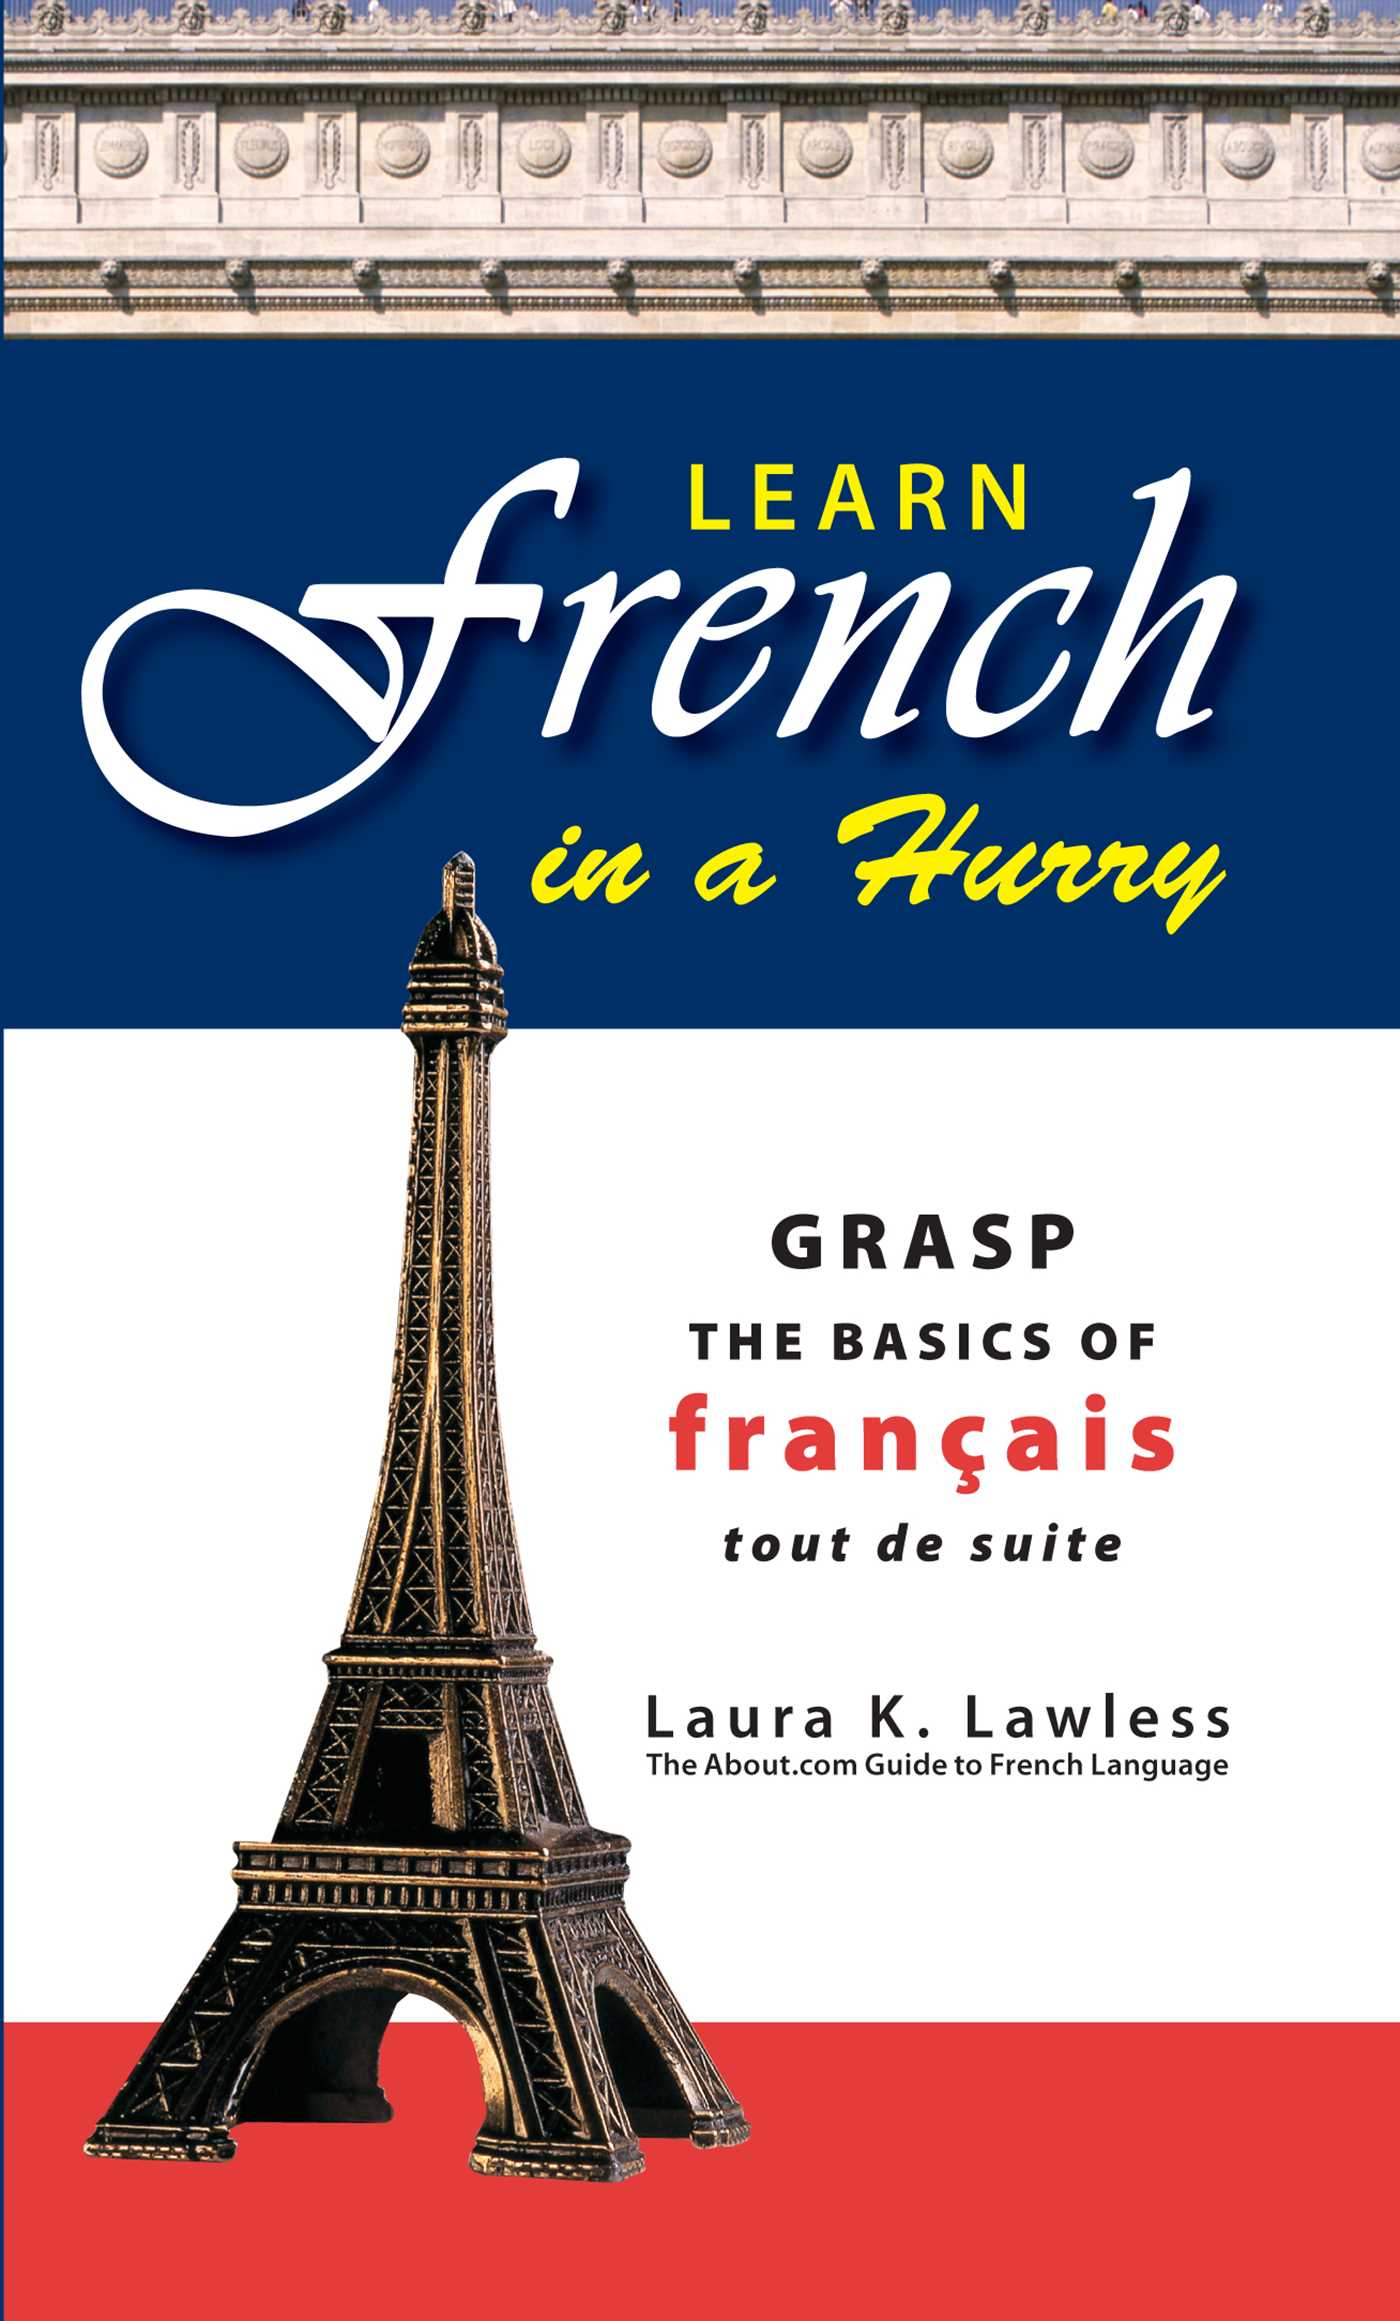 Amazon.com: learn french: Books